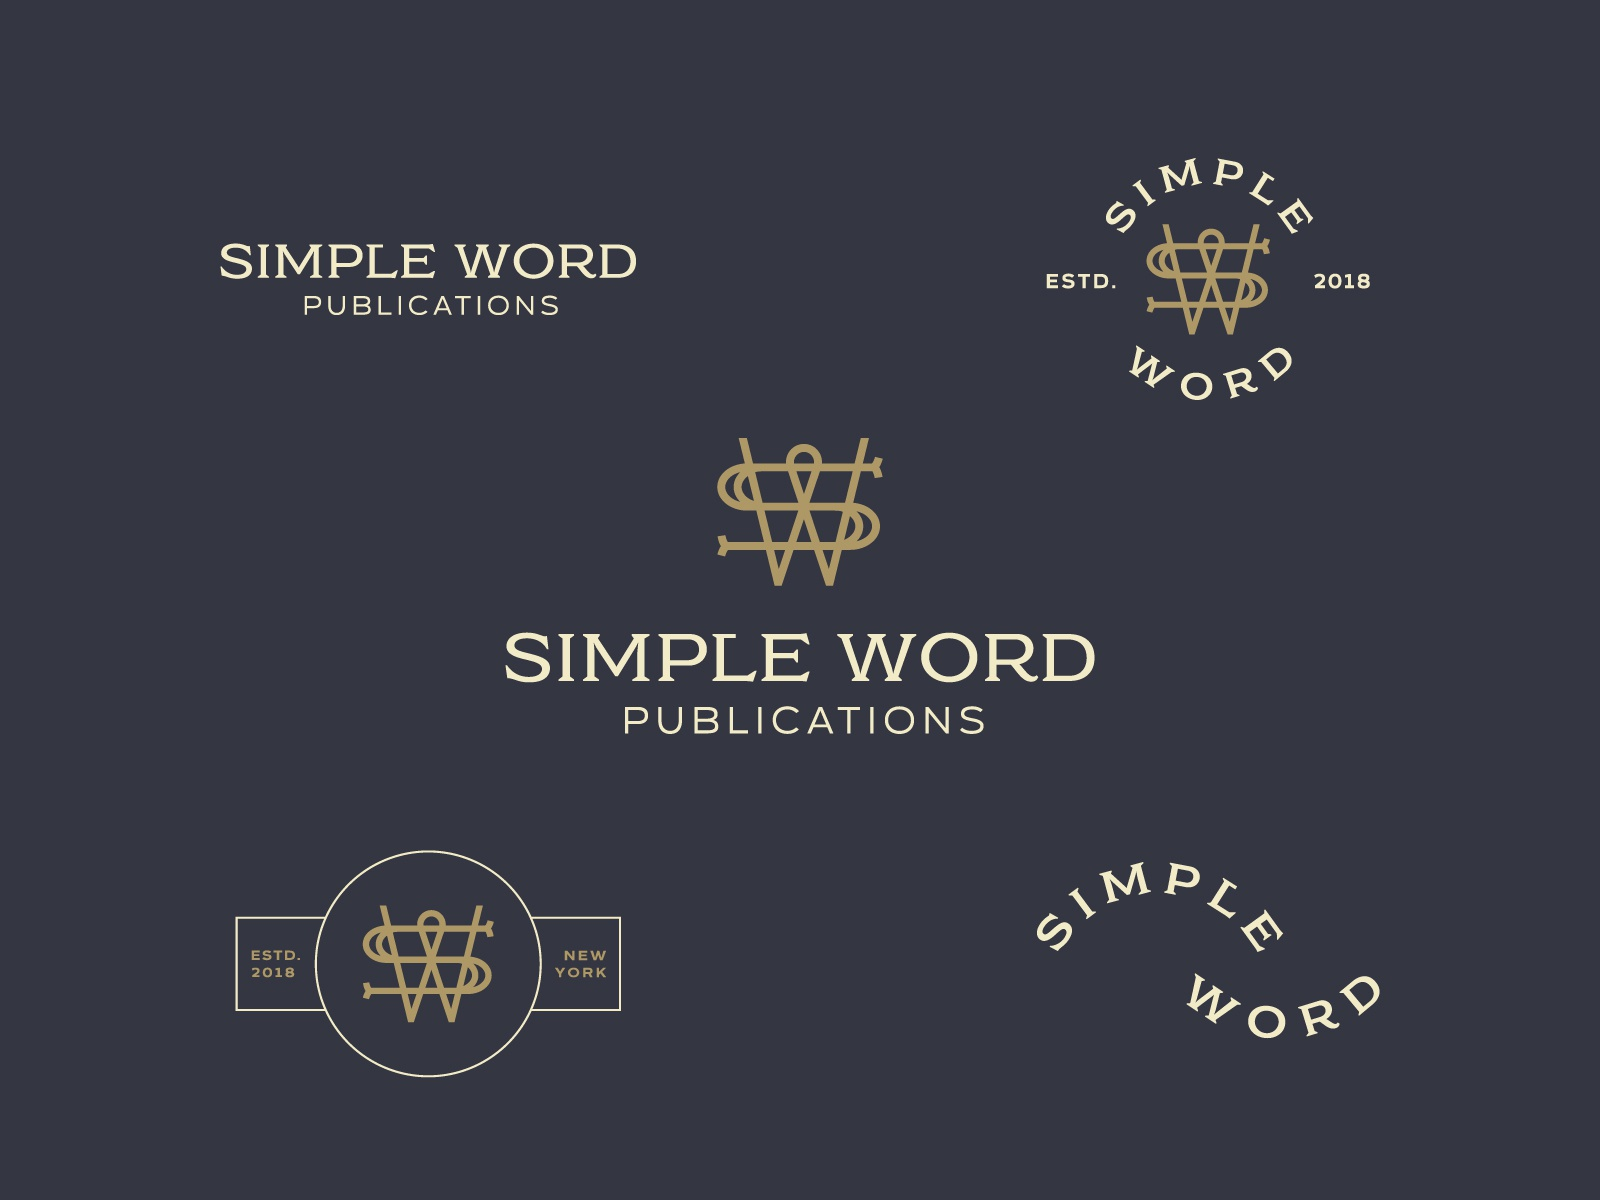 Simple Word Publications — Identity letters simple font books publishing  typography icon design branding badge logo